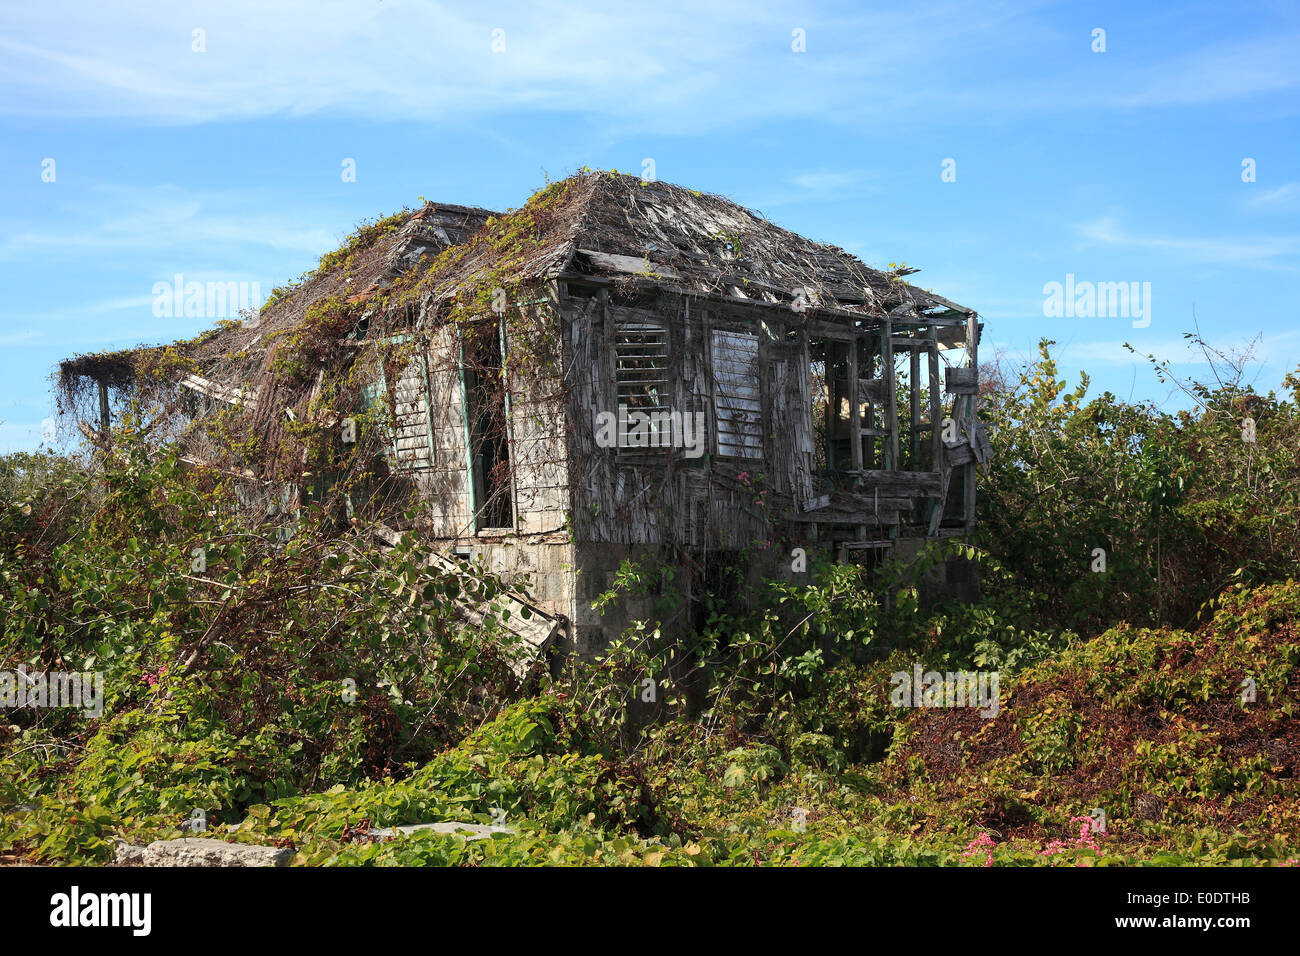 Derelict House in the Caribbean - Stock Image